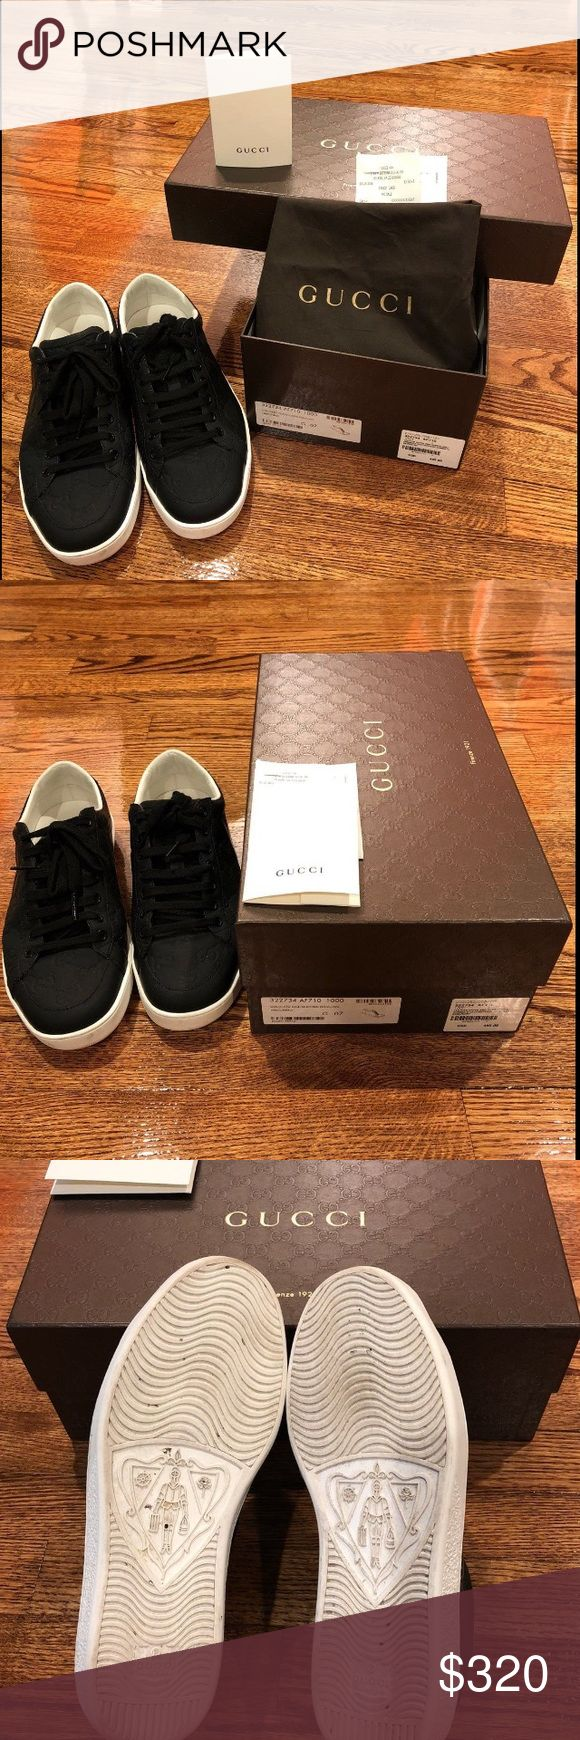 Authentic Gucci Men Shoes I bought in Virginia. I had received everything.......  A little too big for my husband. He worn 2 times, still in good condition. Regular price on the box plus tax UK size 7, US size 9 Gucci Shoes Sneakers